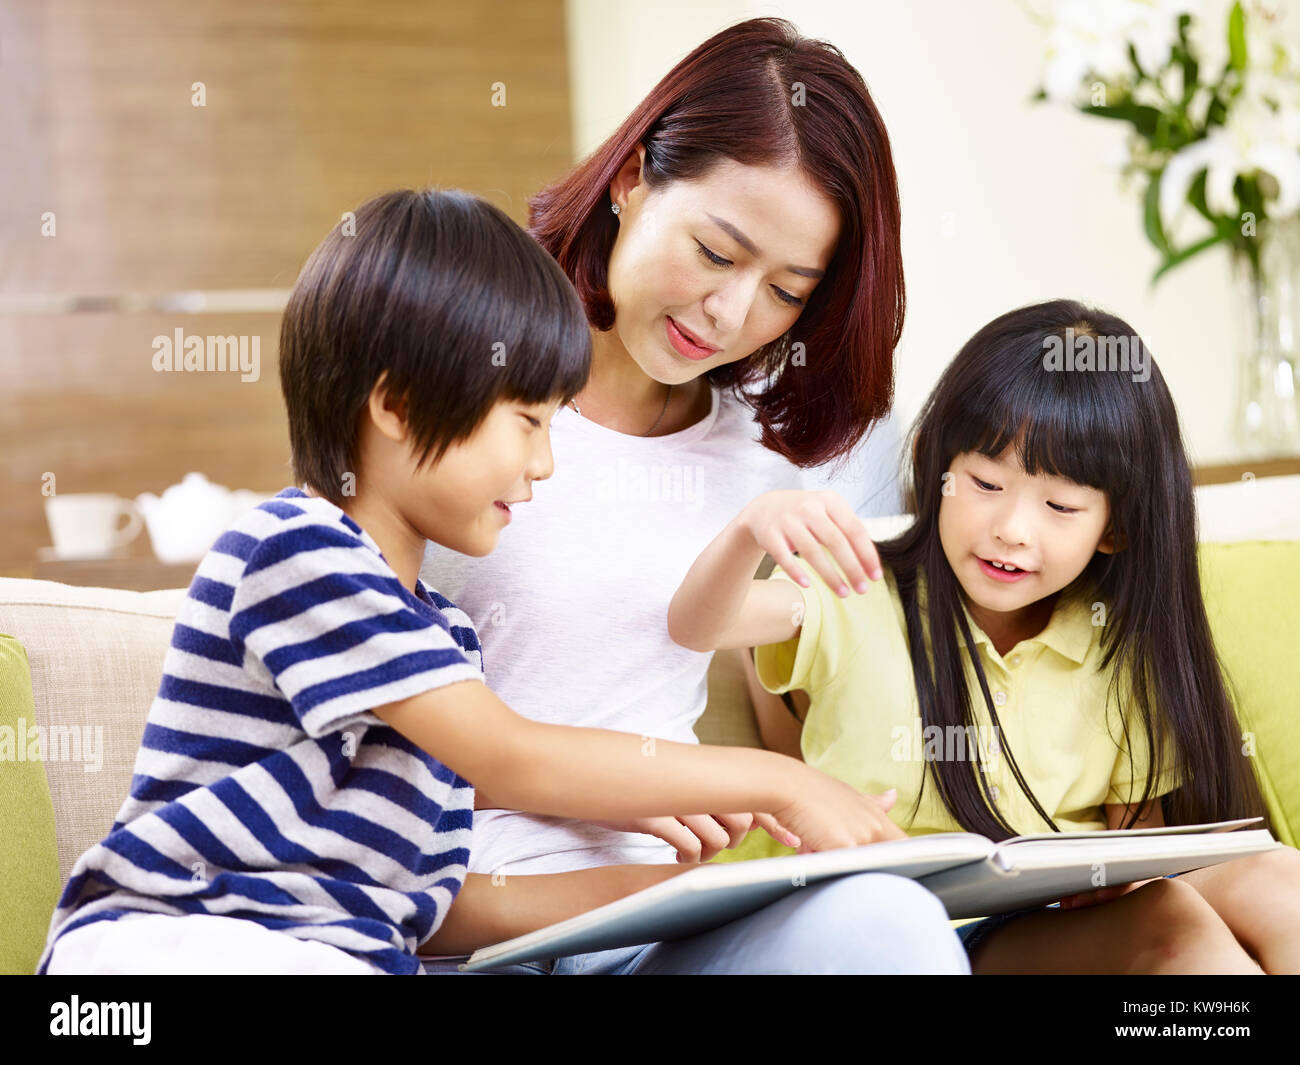 young asian mother and her son and daughter sitting on couch reading a book together. - Stock Image